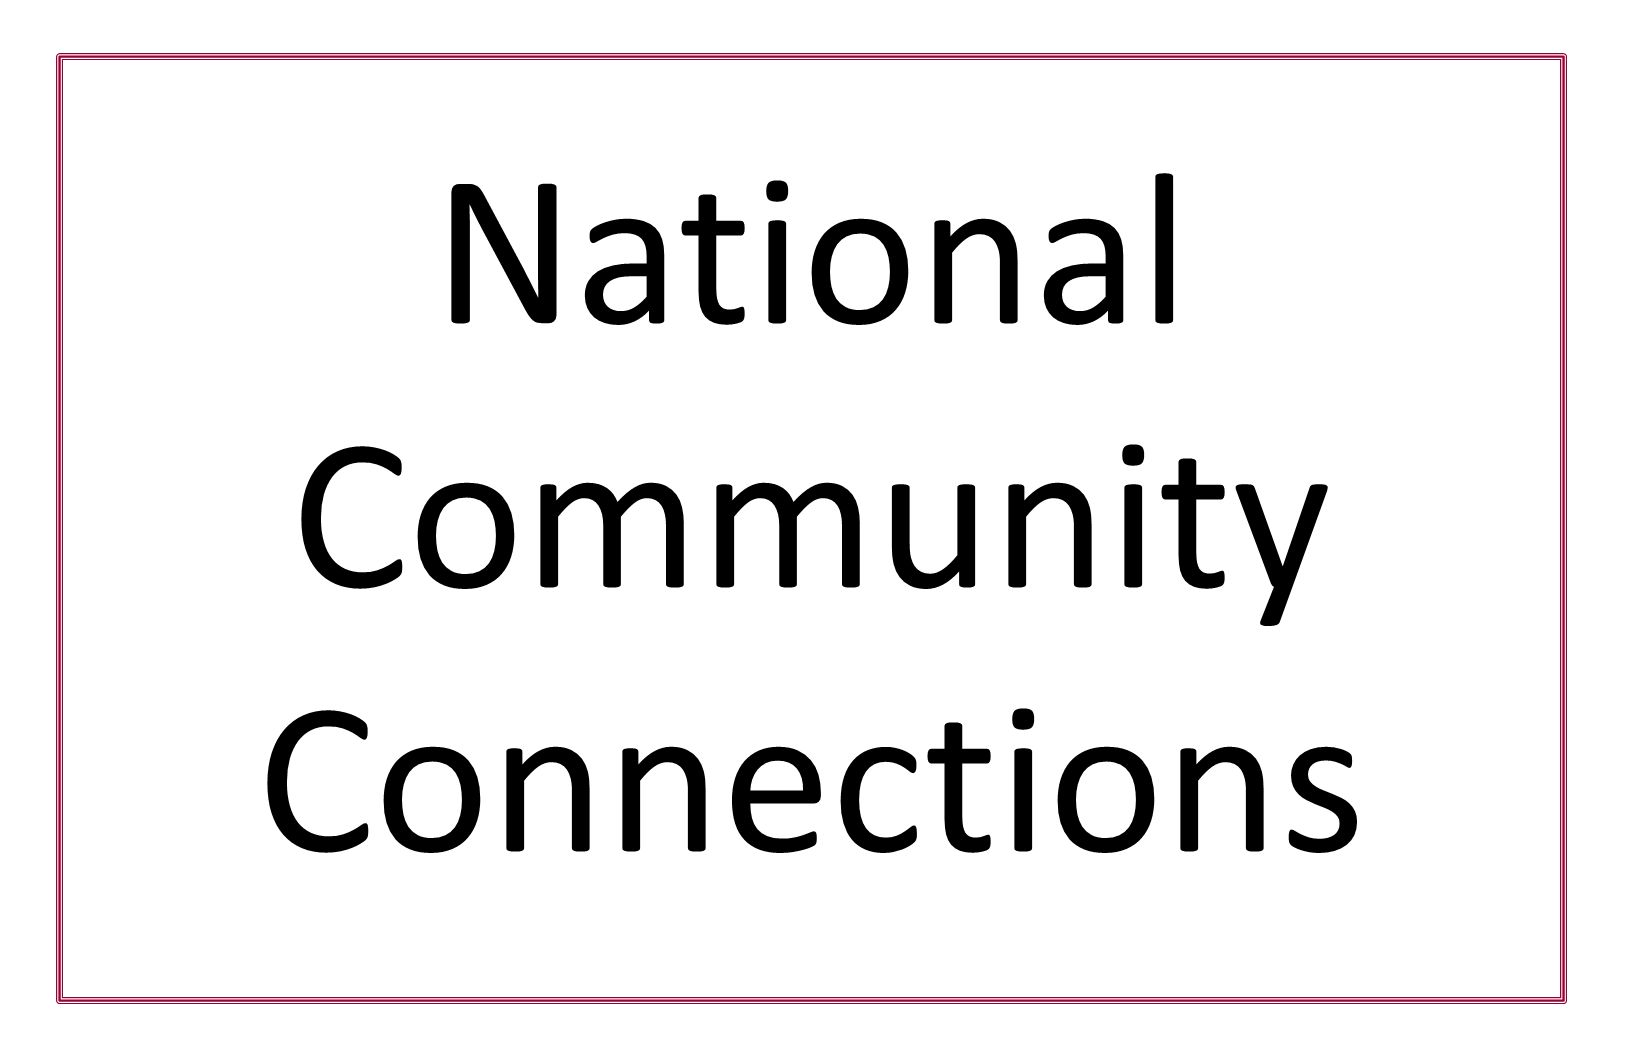 National Community Connections